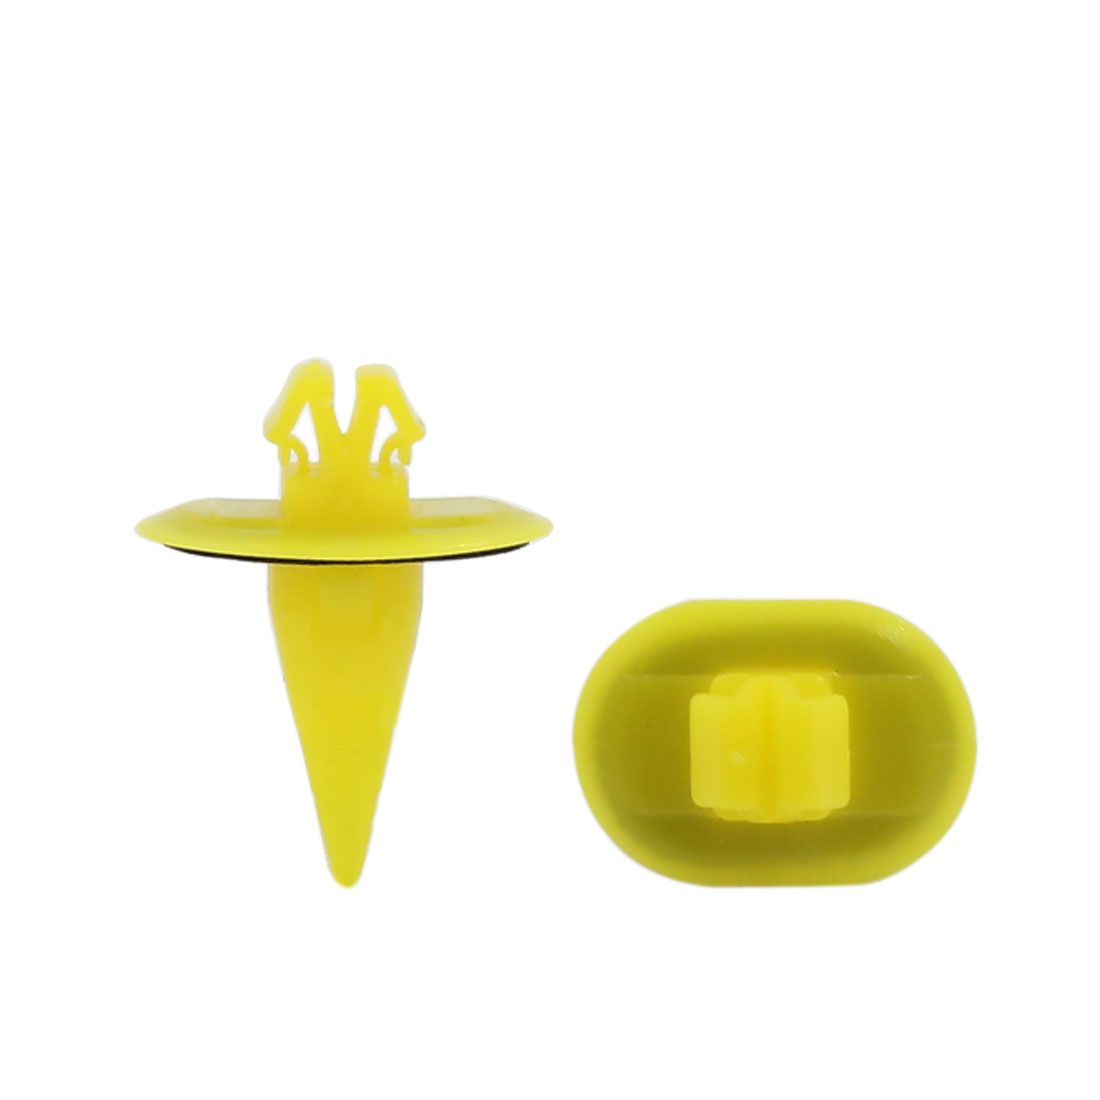 100pcs Fit 8 x 11mm Hole Size Fender Wheel Flare Moulding Clip Retainer Fastener w Flat Washer Yellow For Toyota